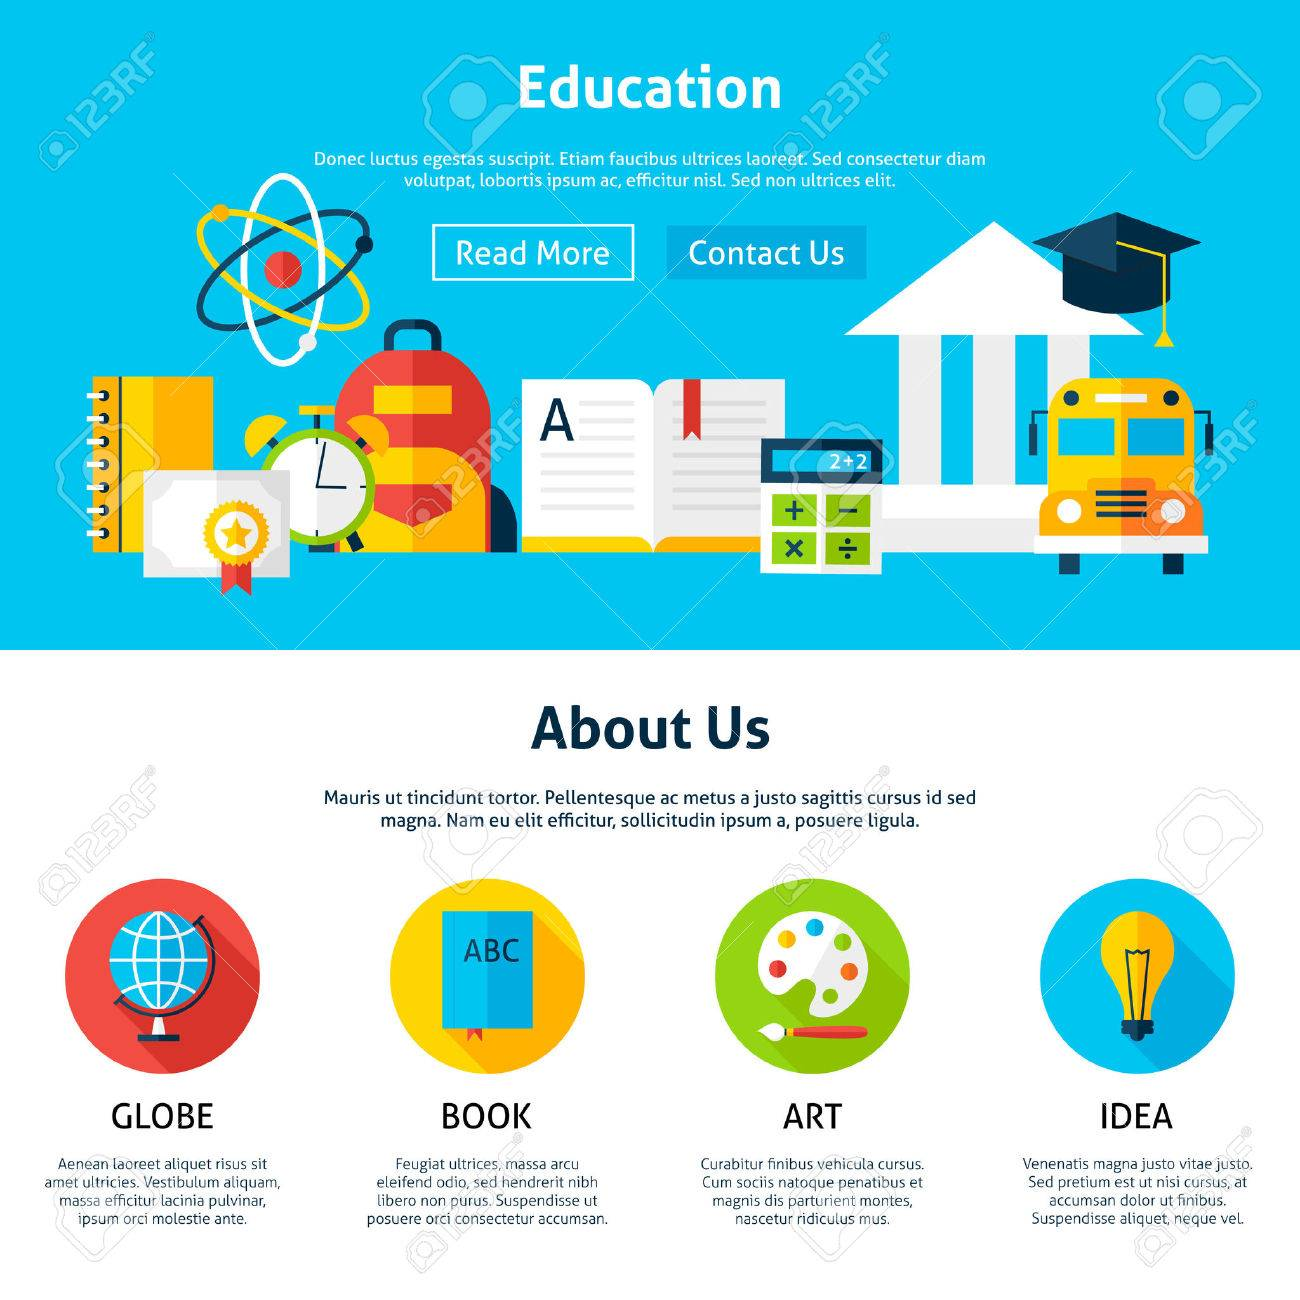 Education Flat Web Design Template Vector Illustration For Website Royalty Free Cliparts Vectors And Stock Illustration Image 59120647